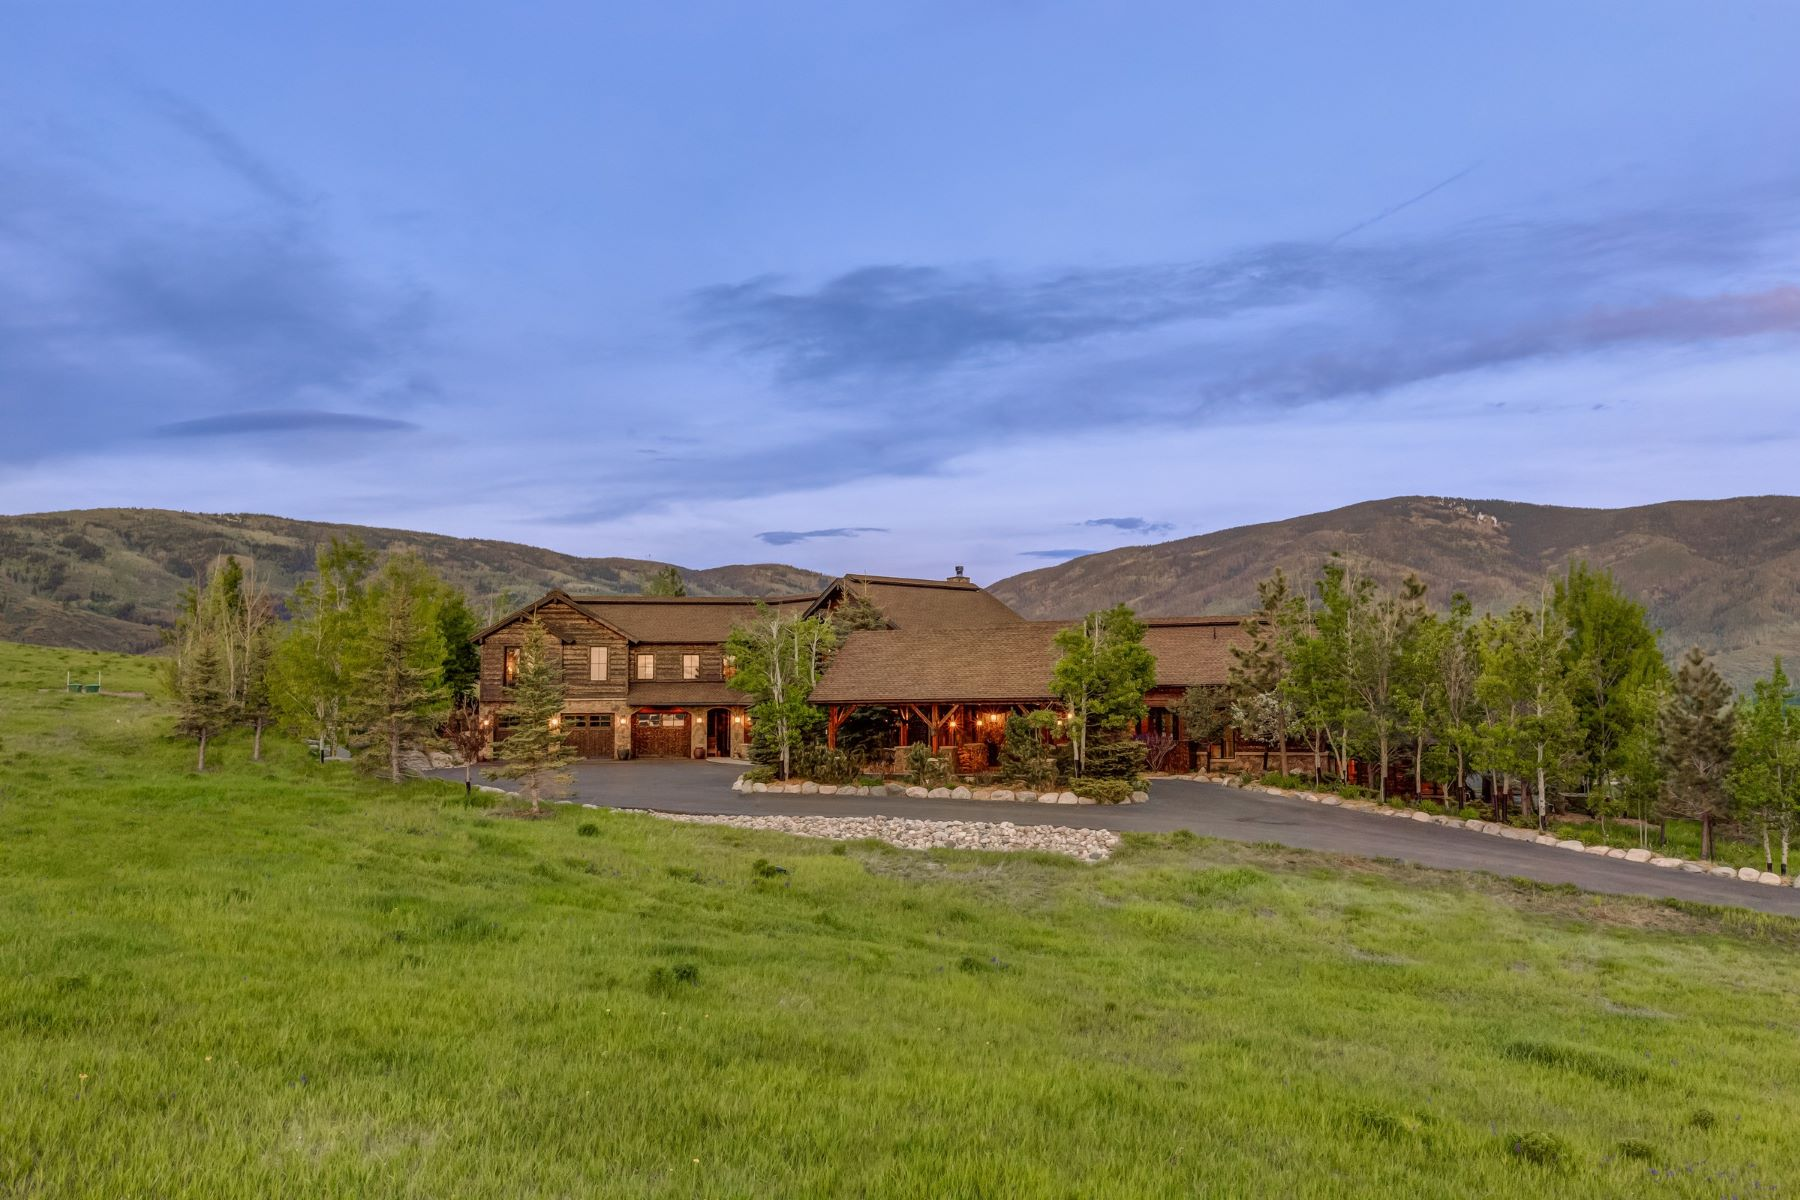 Maison unifamiliale pour l Vente à Lake Catamount Beautiful High-End Design Lake Catamount Home 32120 County Road 14C Steamboat Springs, Colorado, 80487 États-Unis